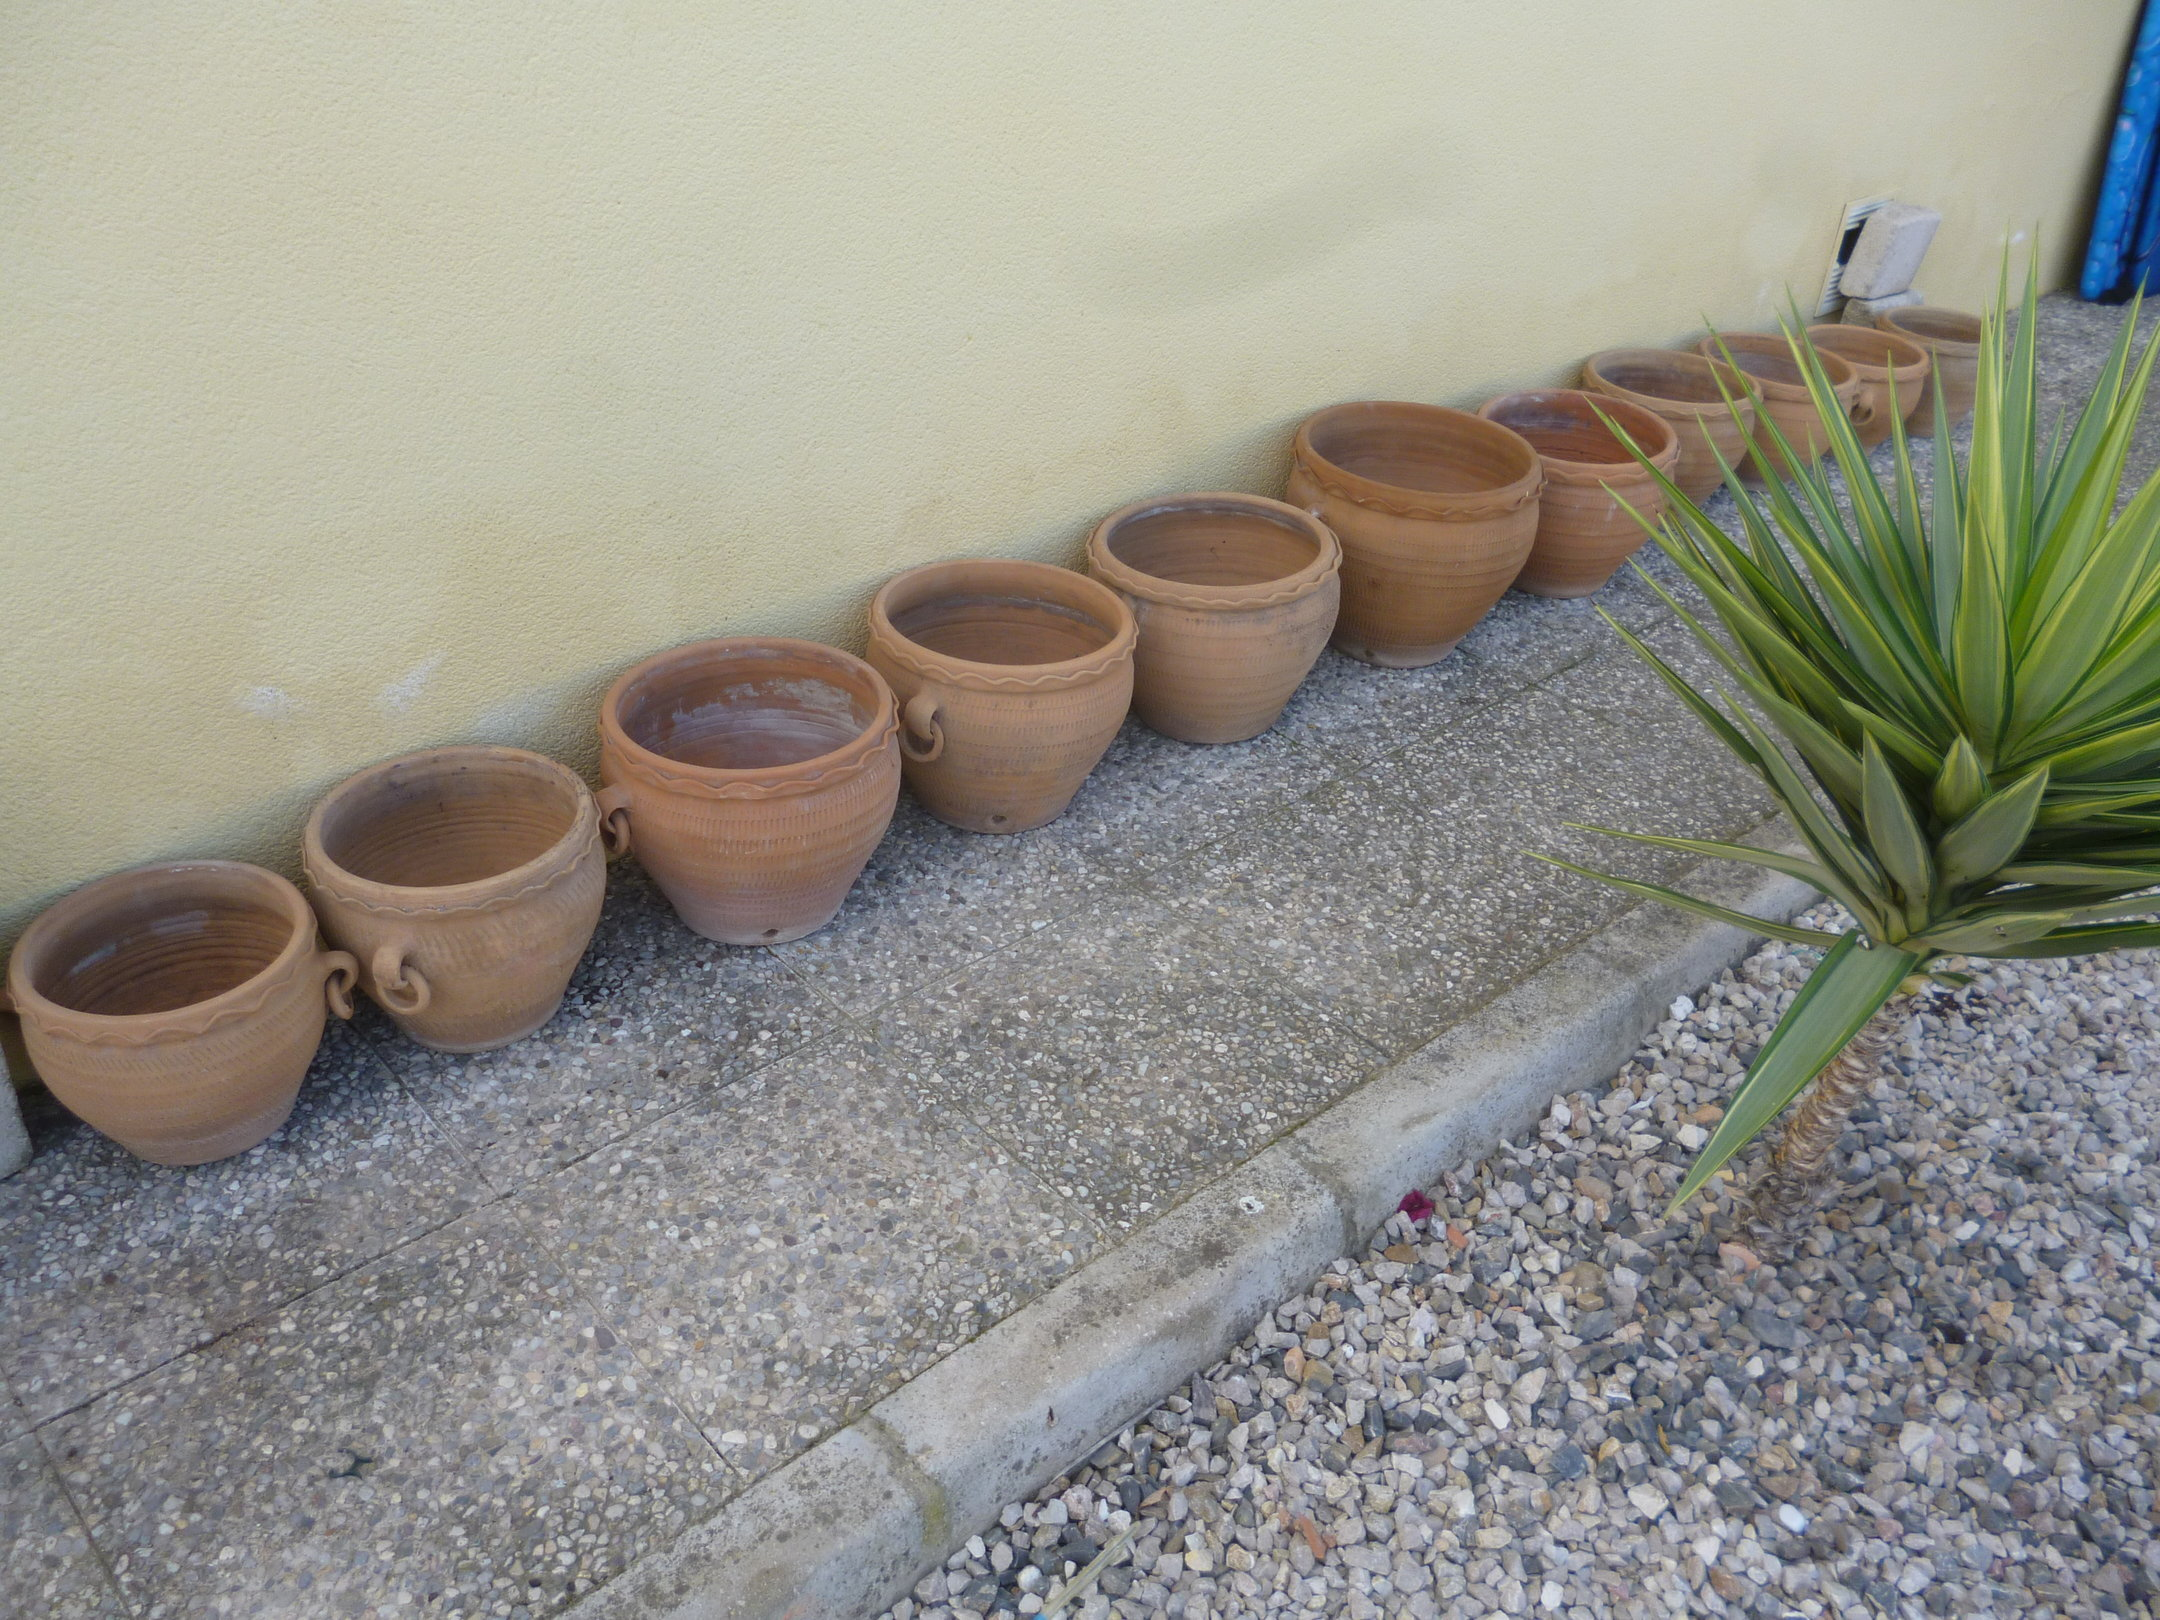 pi joy diy weblog easy to my planters transform painted planter way an pots a terracotta oh